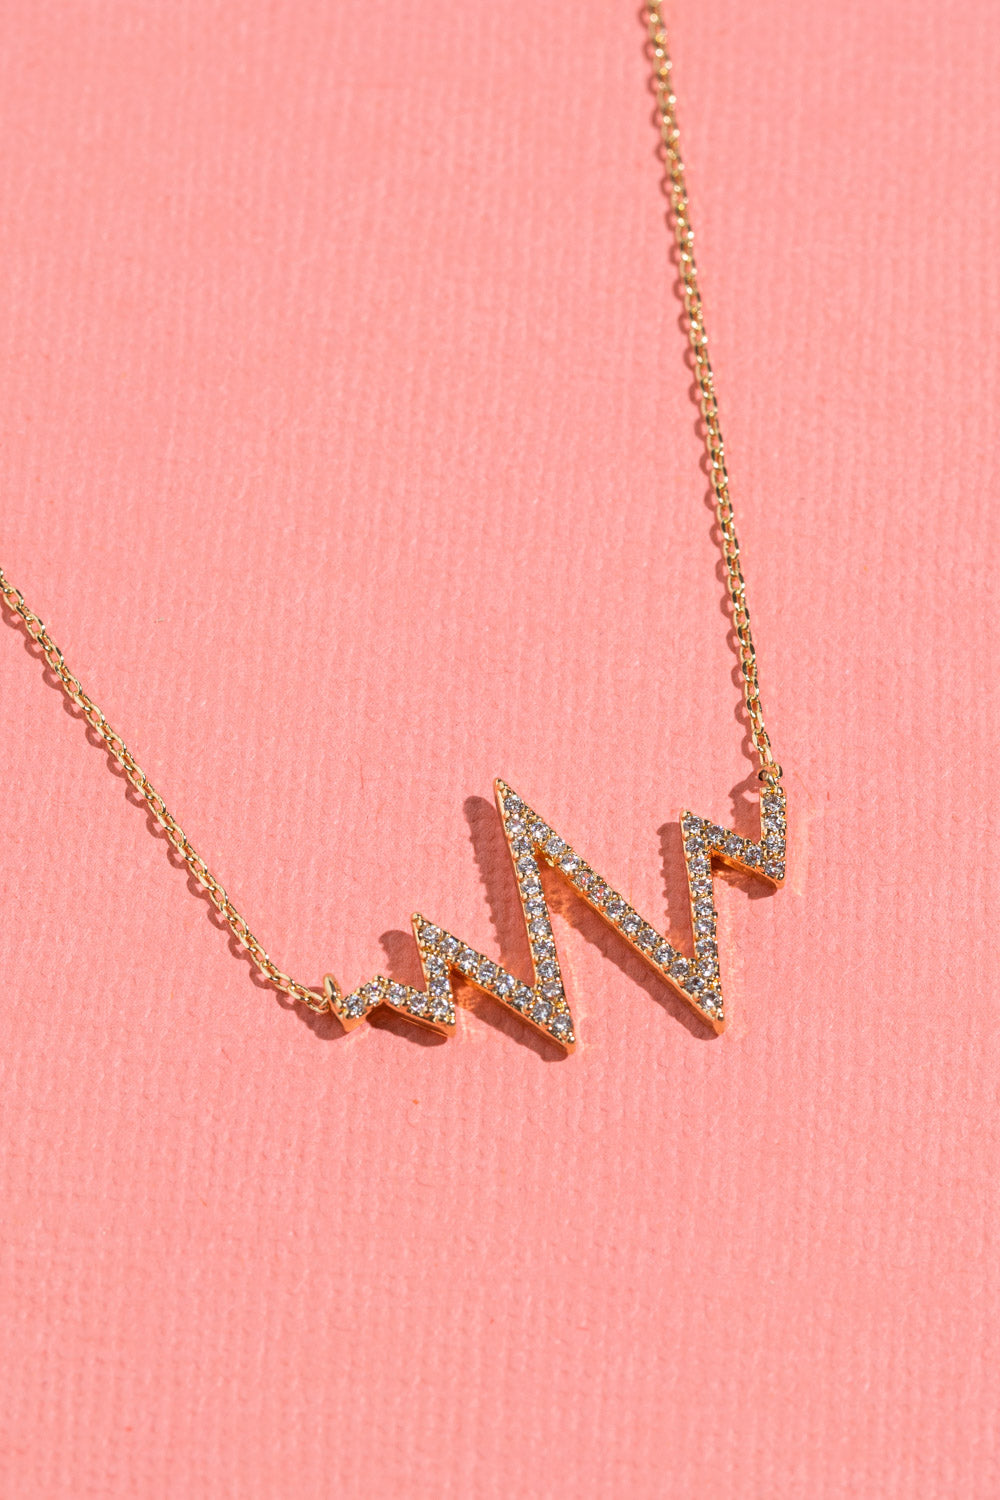 Type 3 On the Beat Necklace